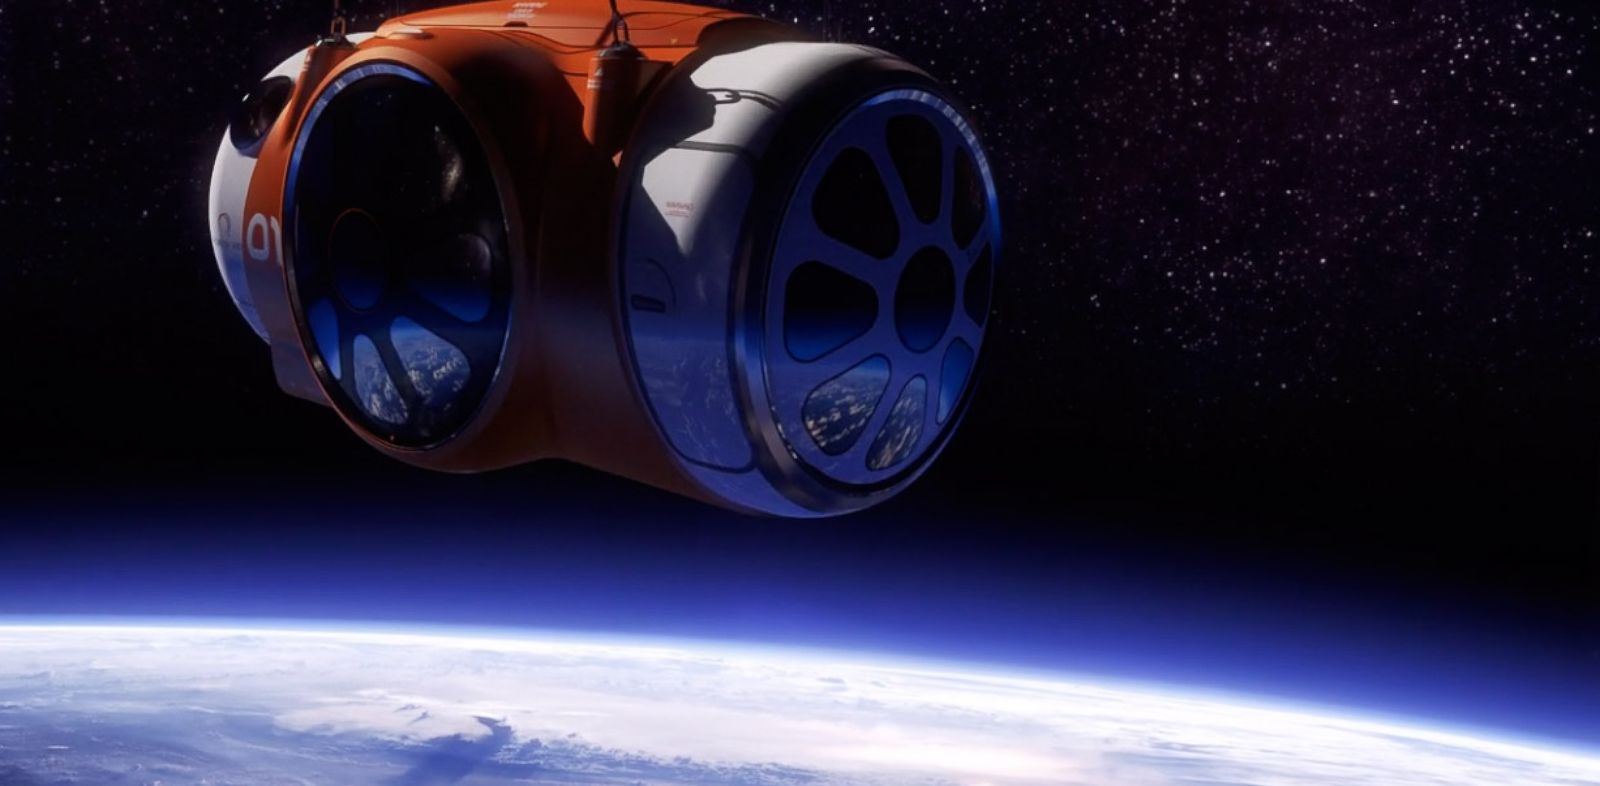 PHOTO: Rides to space via helium balloon by 2016.